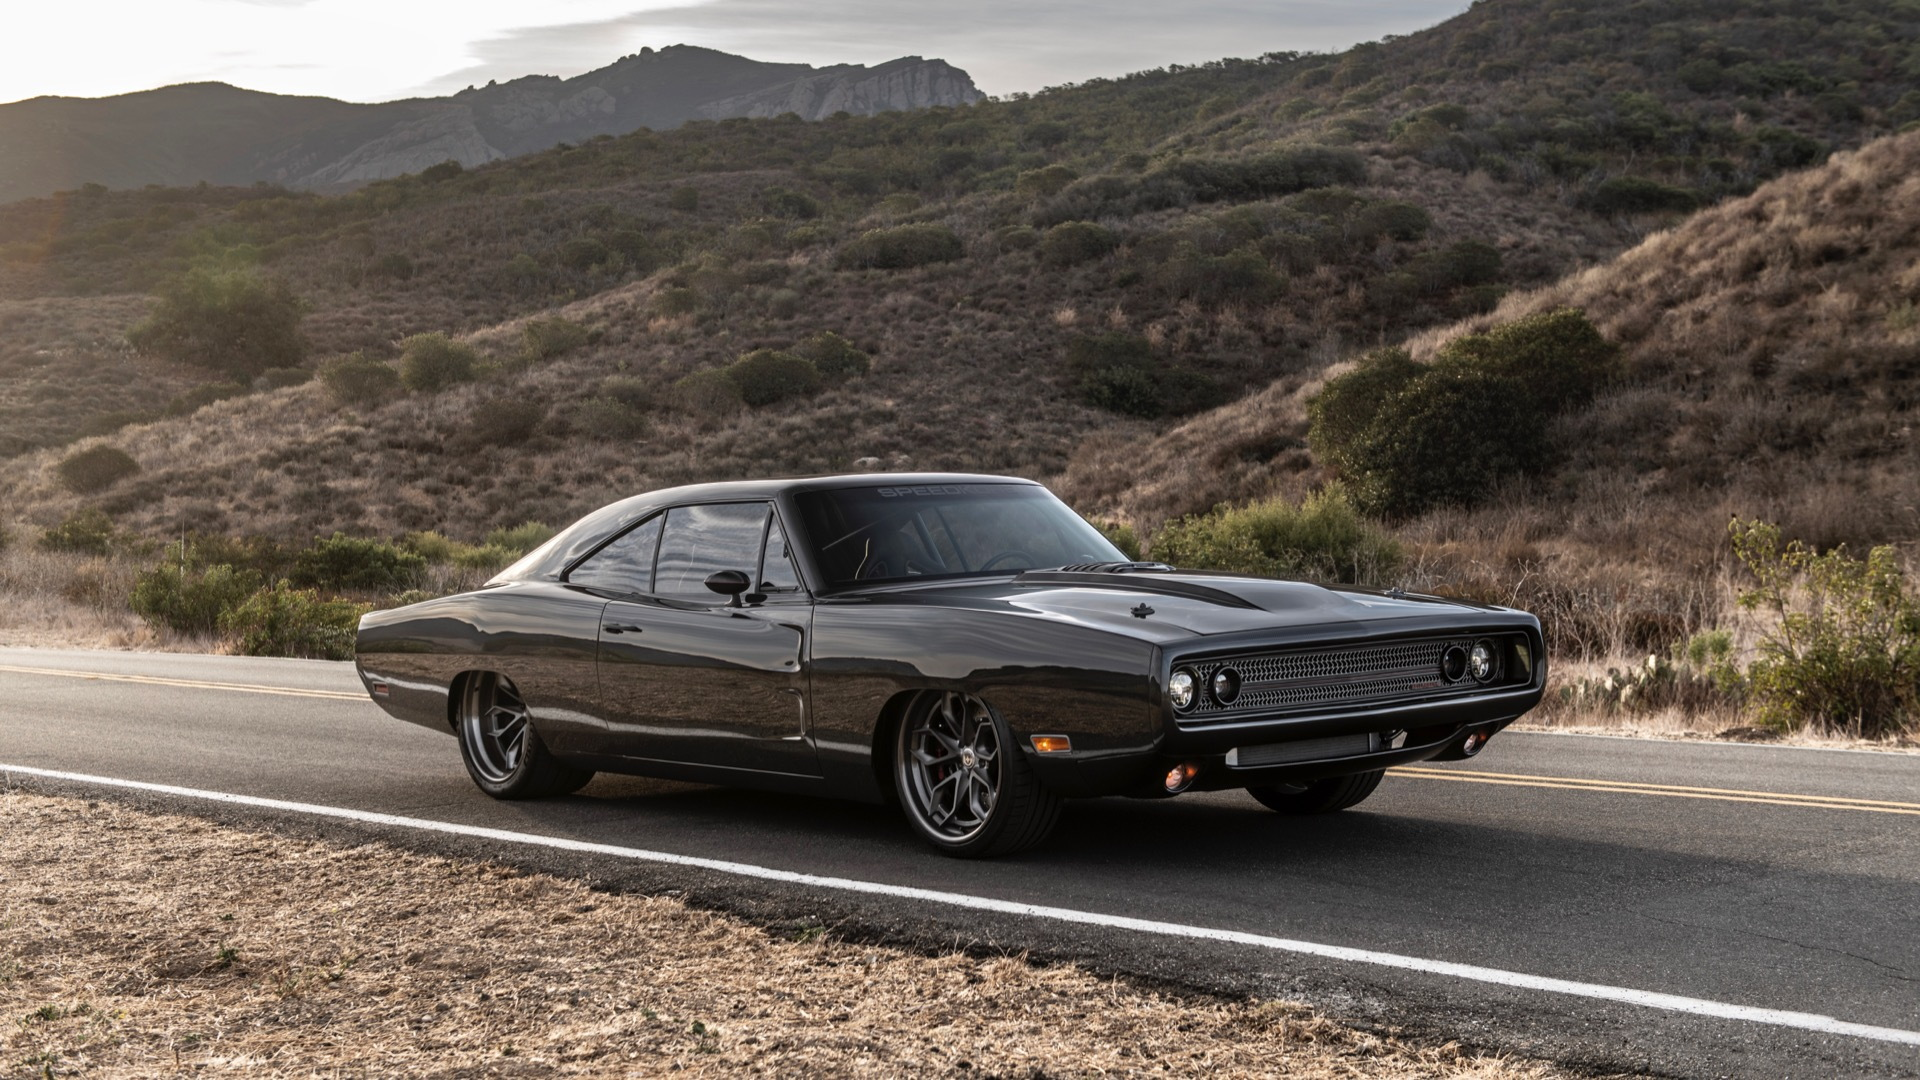 SpeedKore Hellraiser 1970 Dodge Charger